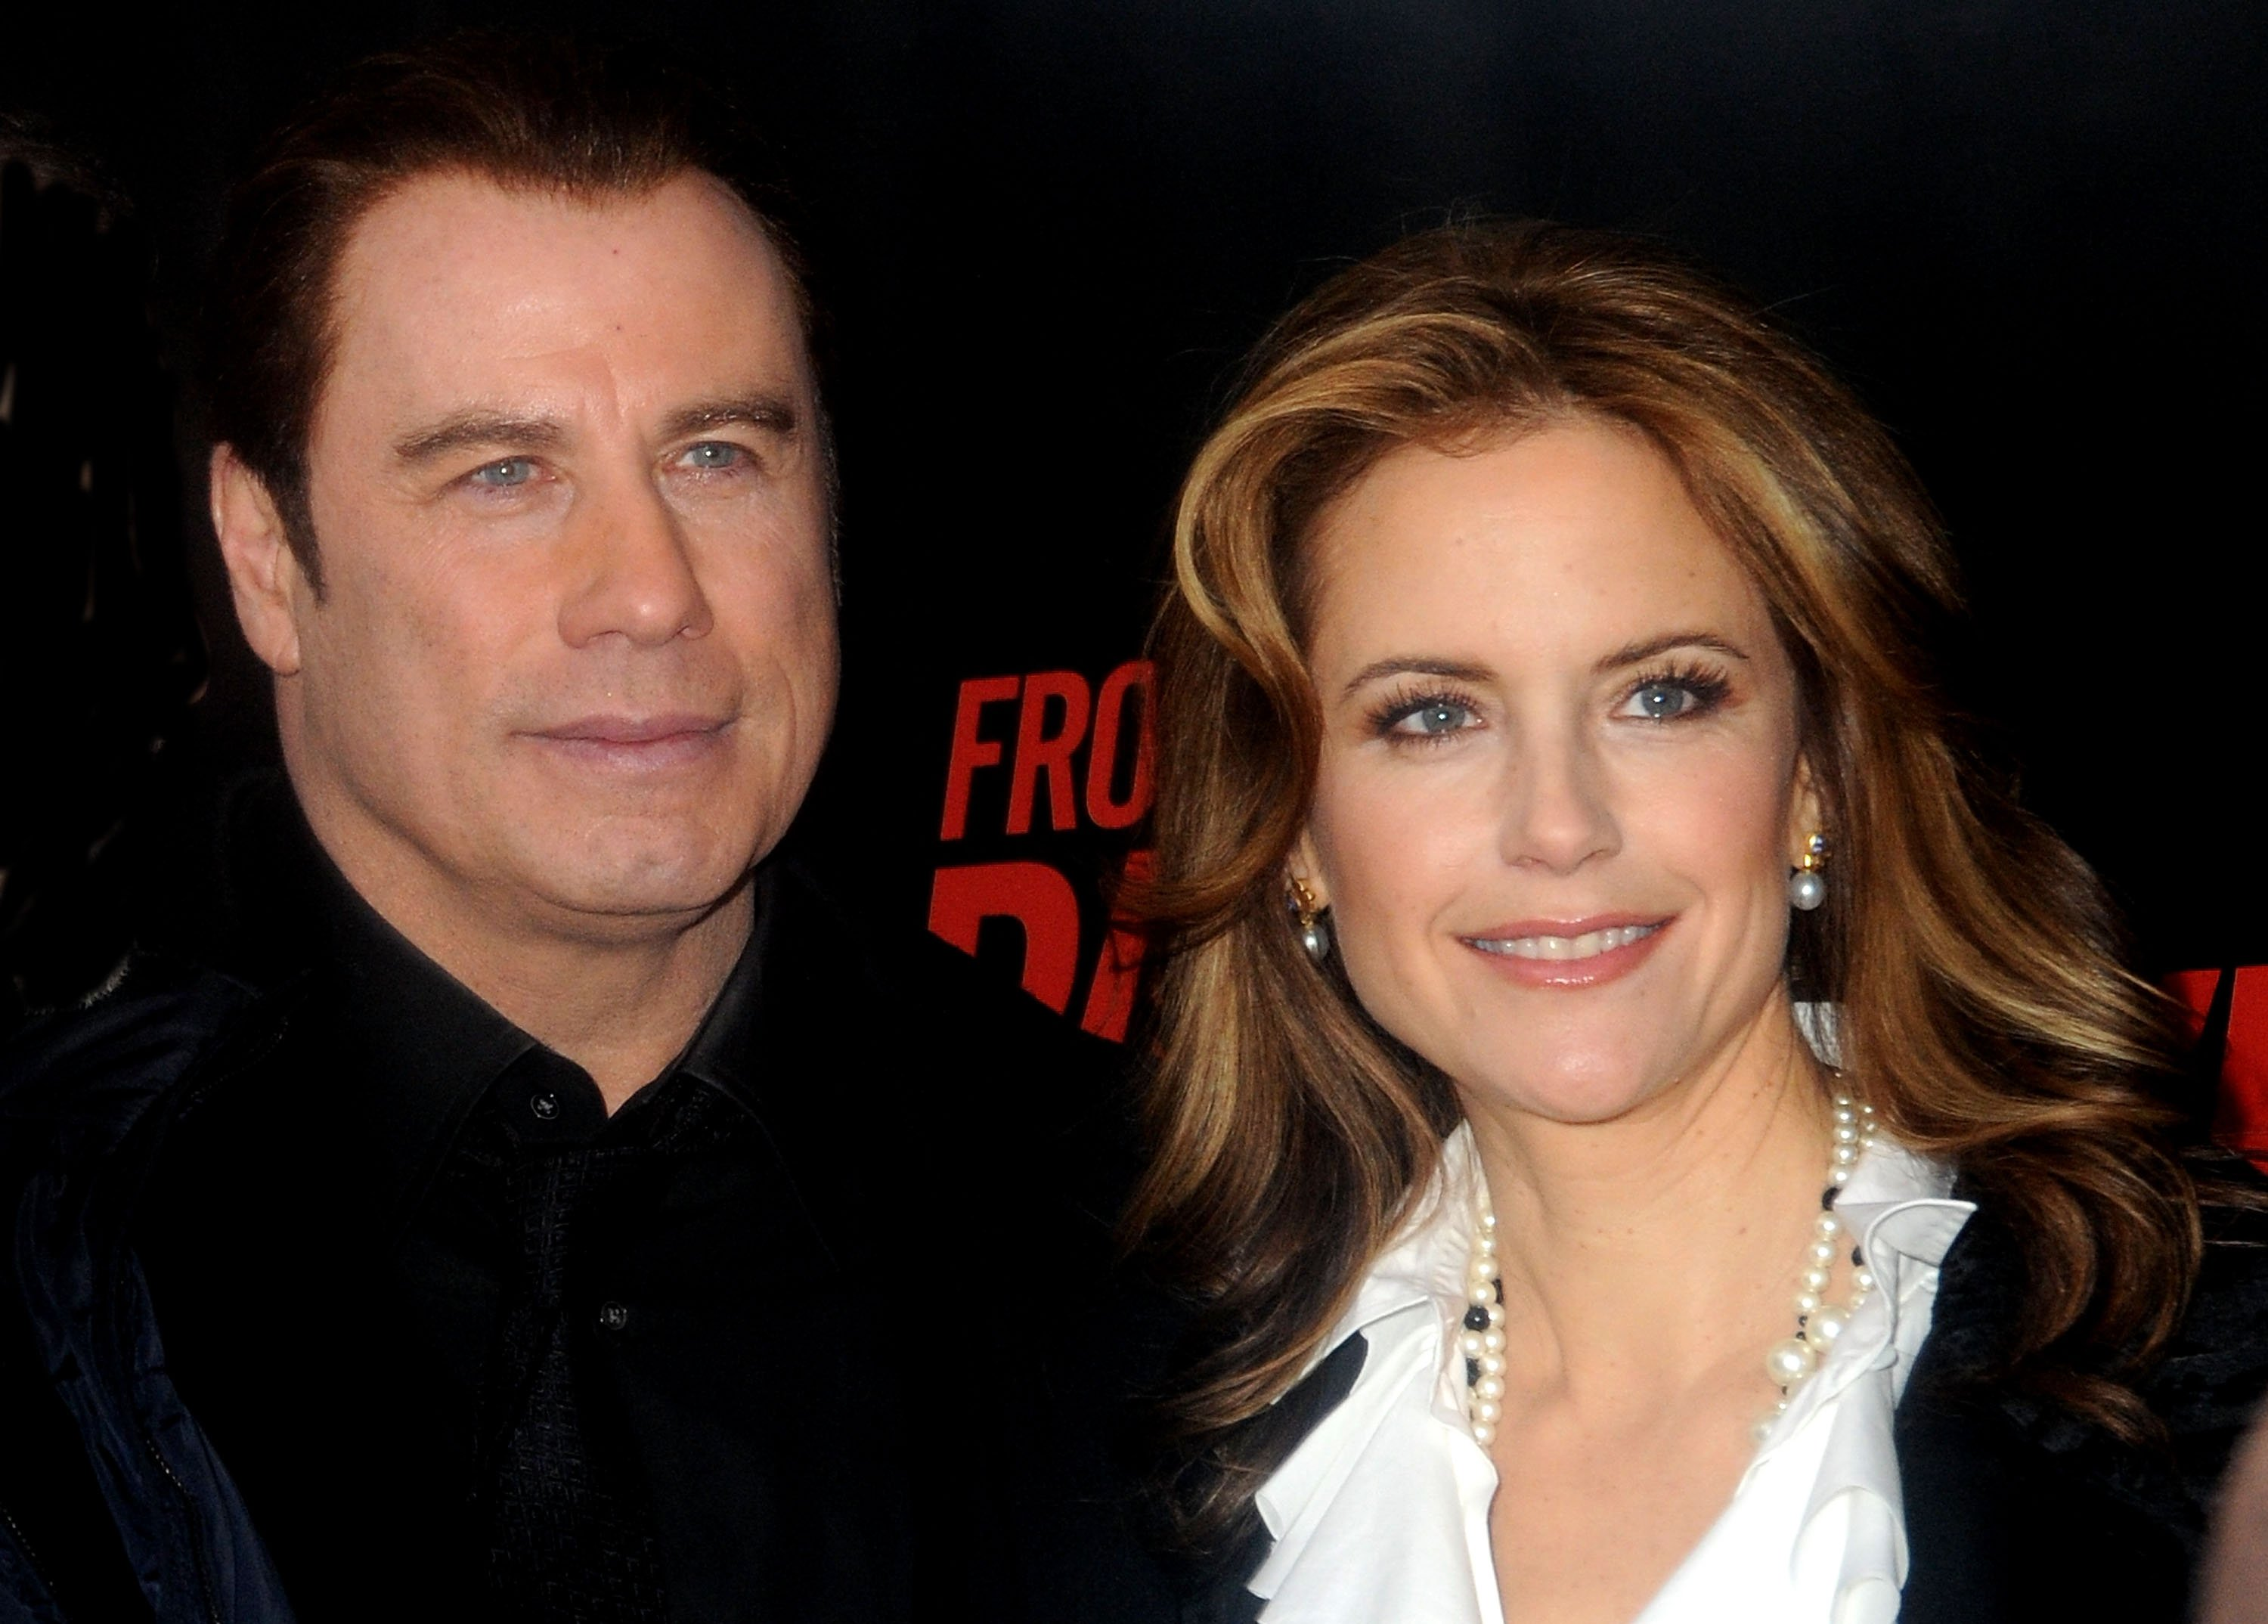 Image Source: Getty Images/John and Kelly at a movie premiere